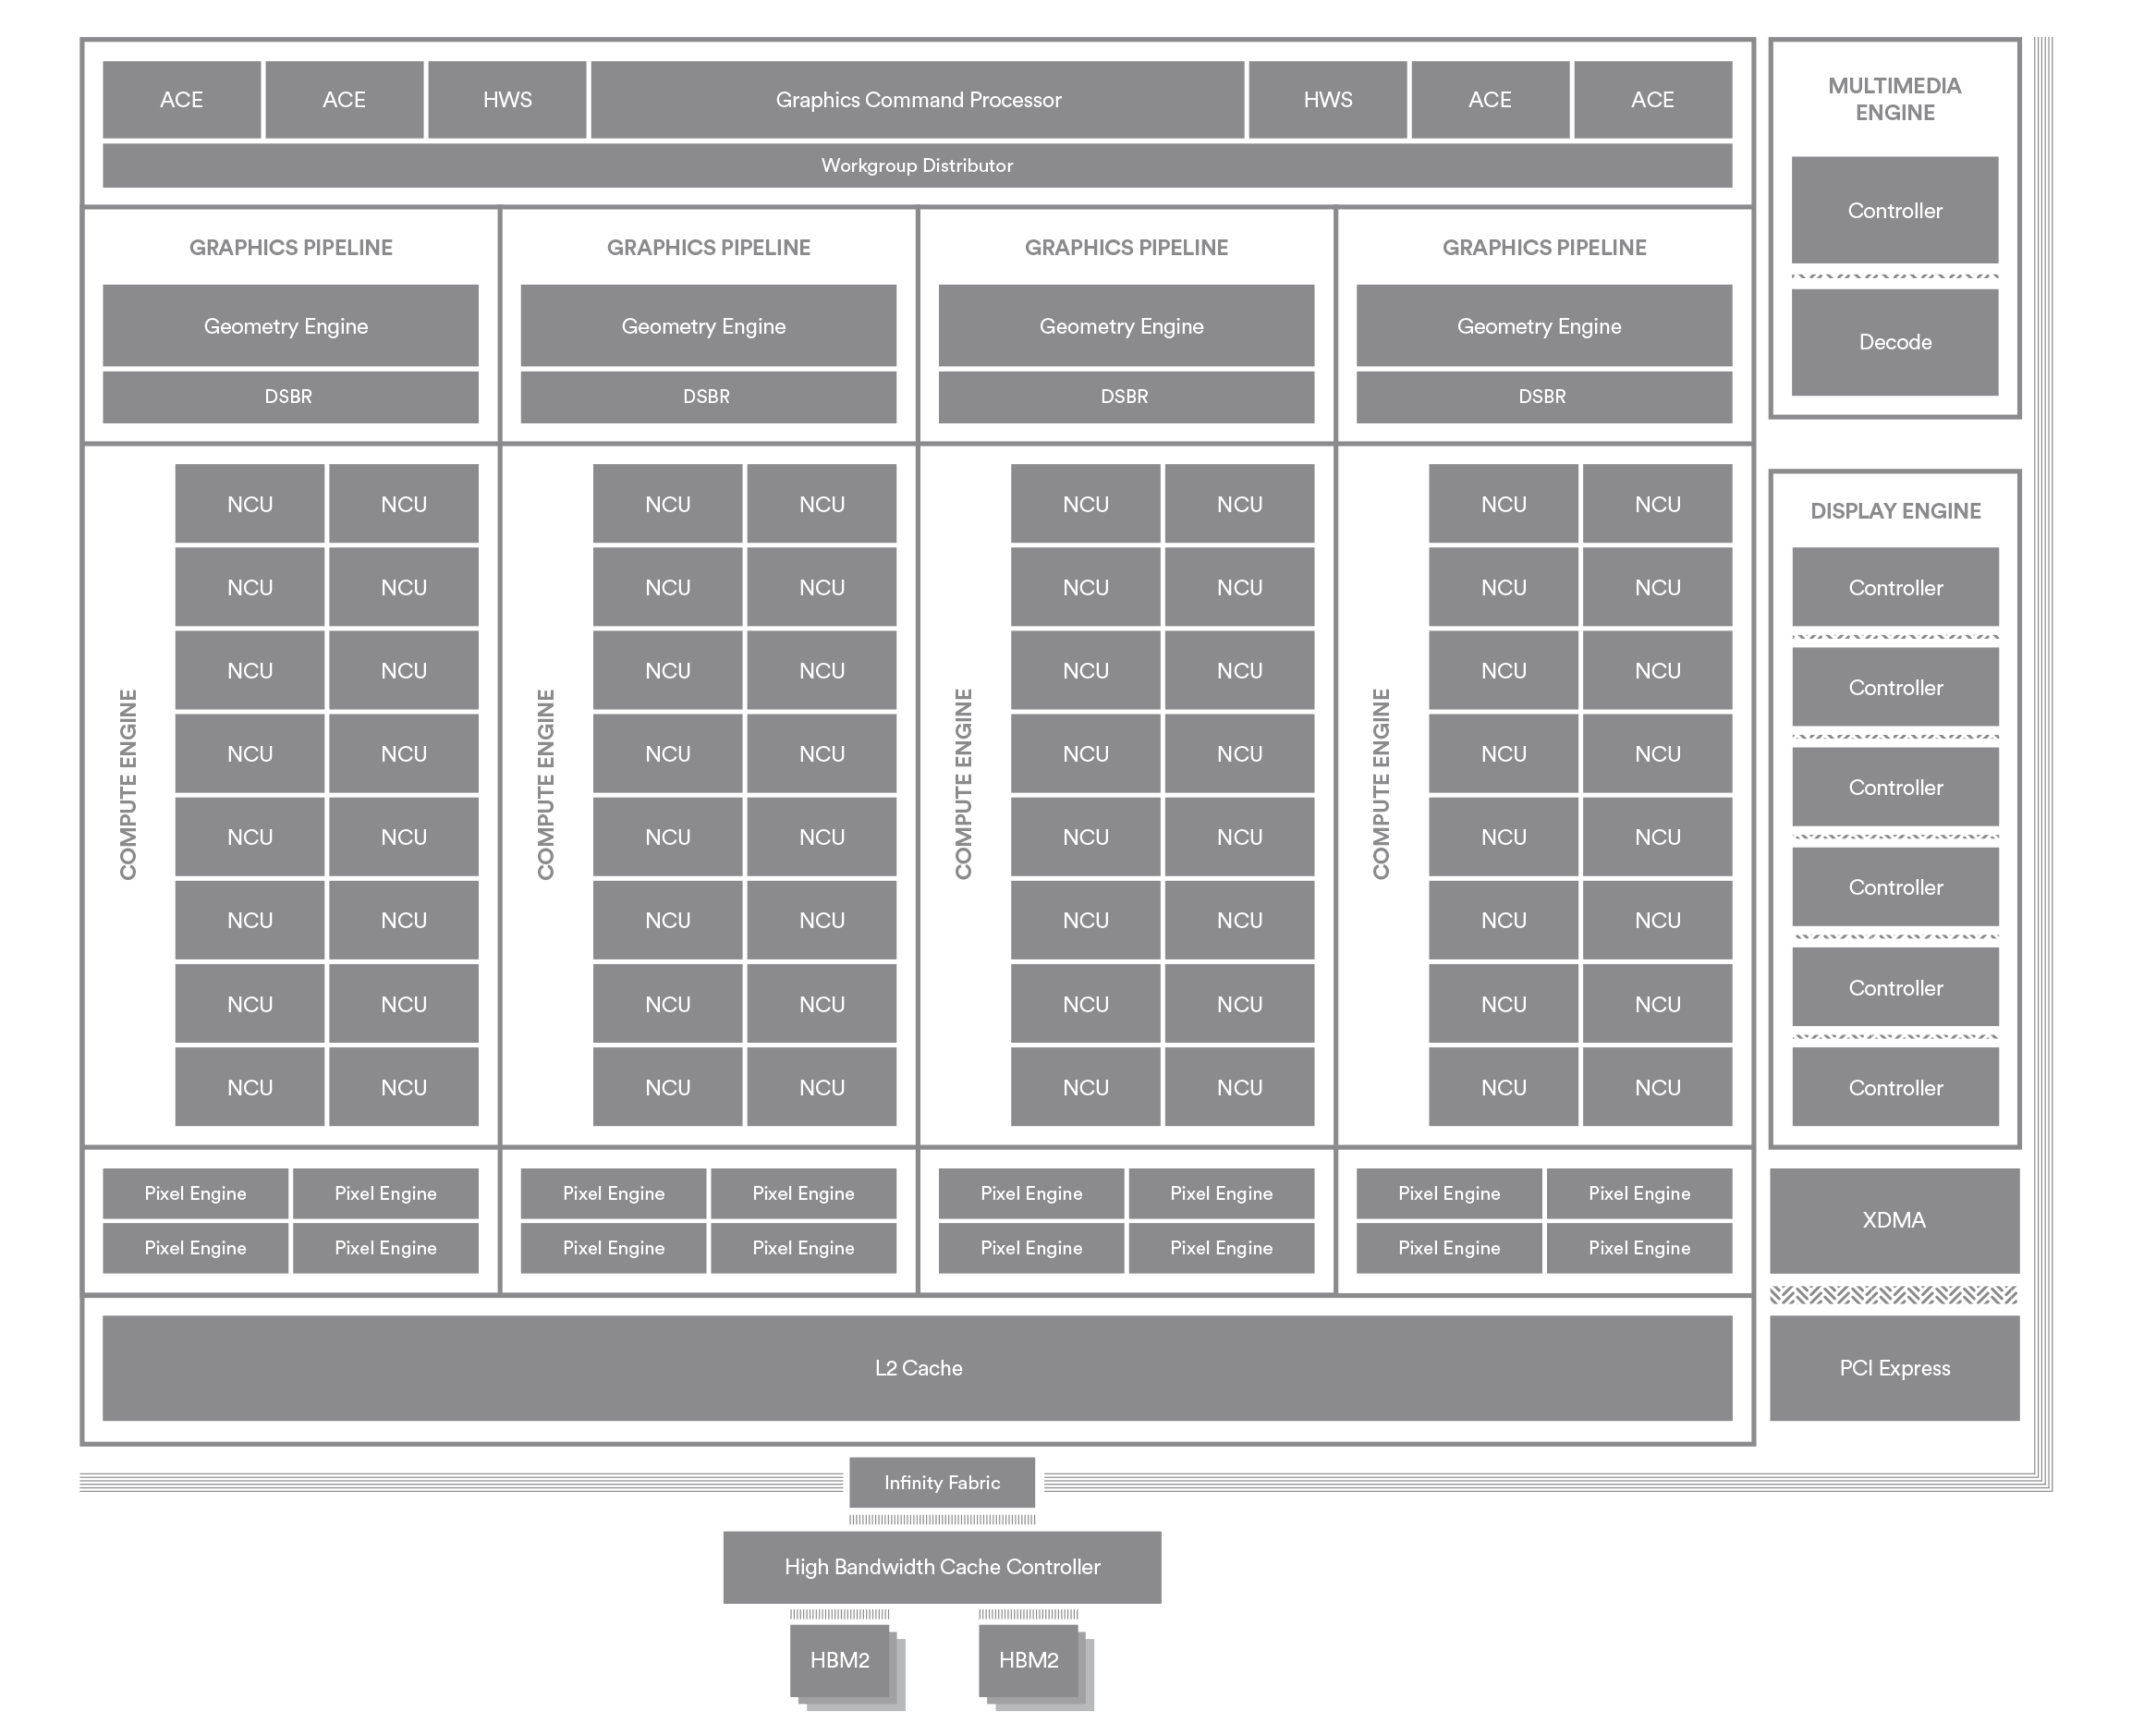 Vega 10 Fiji Of The Stars Amd Radeon Rx 64 56 Engine Block Diagram Not Shown On Amds But Confirmed In Specifications Is How Cus Are Clustered Together Within A Compute All Iterations Gcn